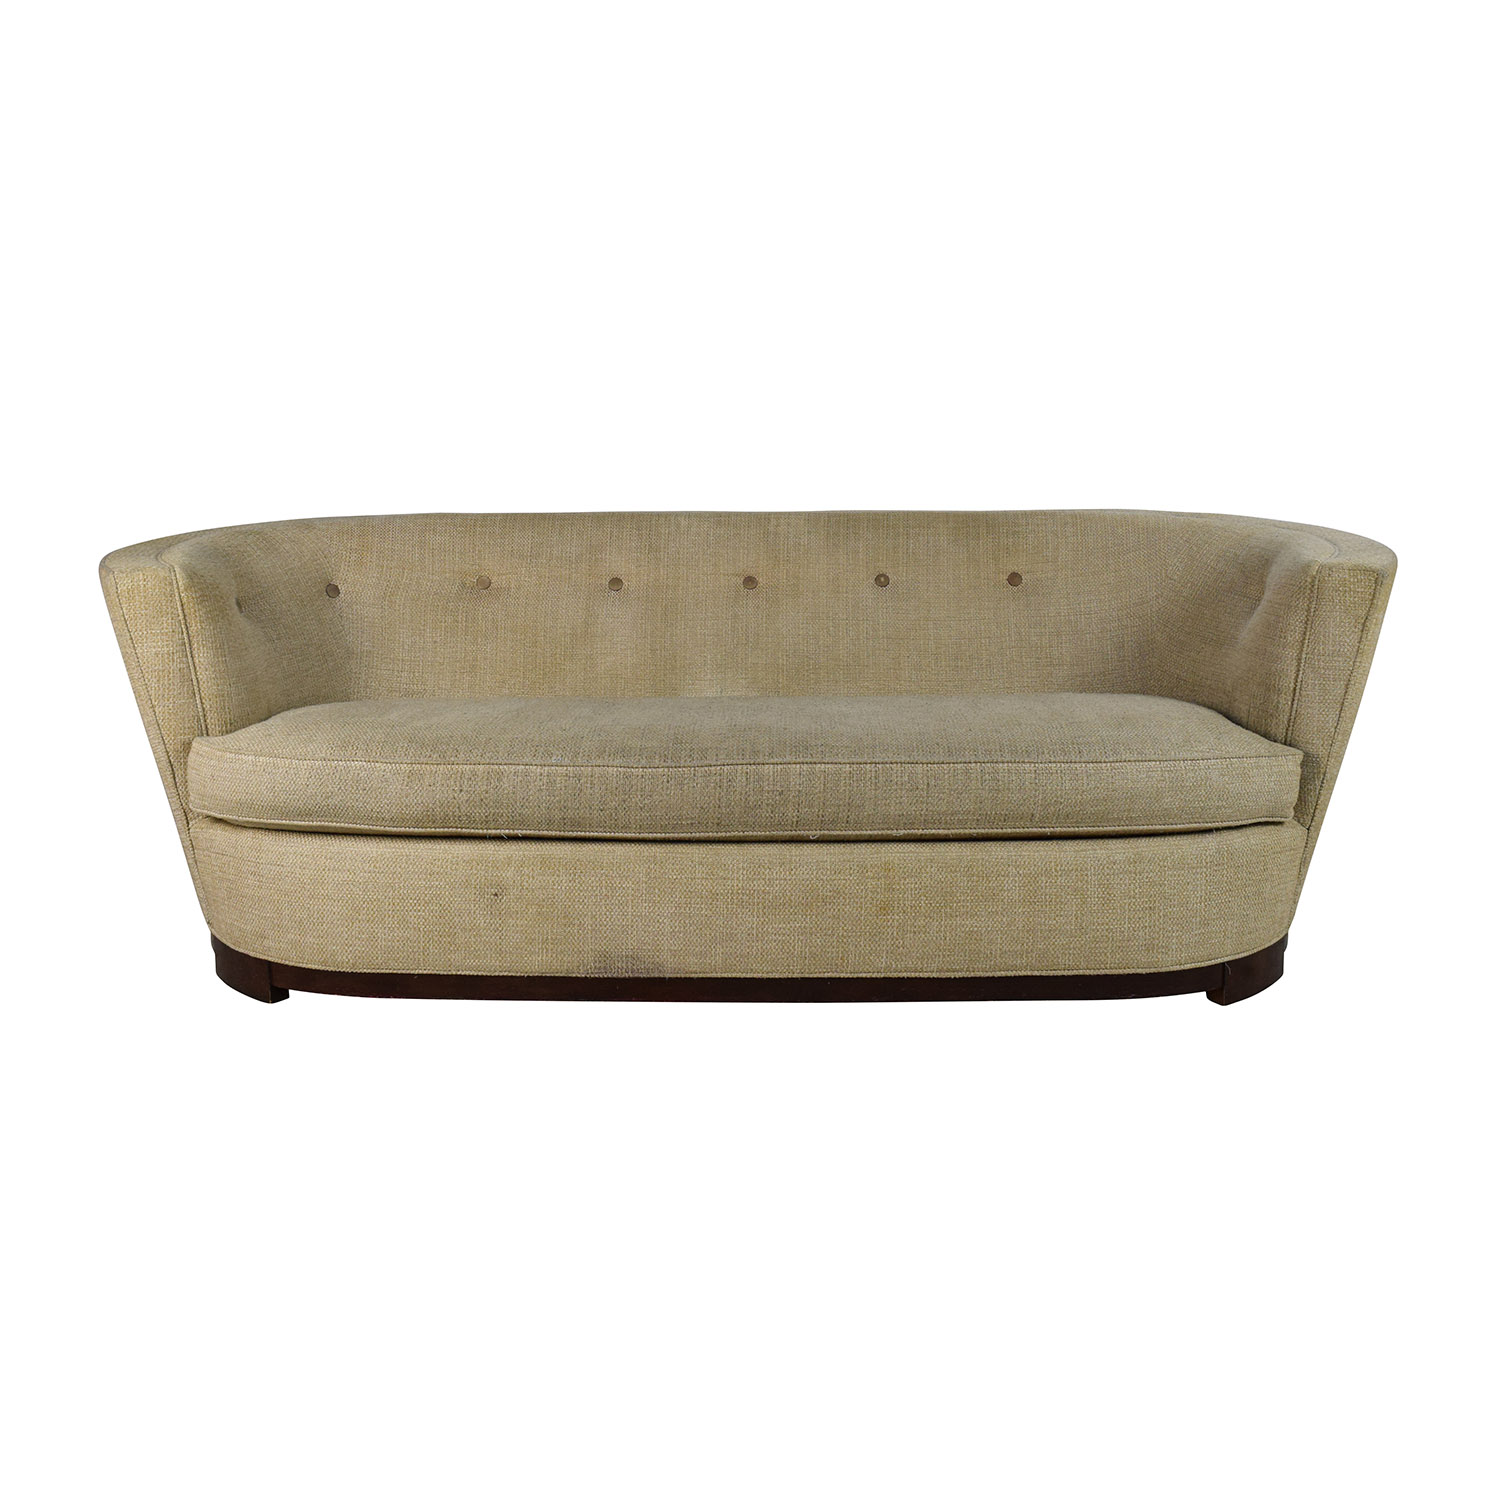 Raymour And Flanigan Raymour U0026 Flanigan Visanti 90 Tan Curved Sofa Light ...